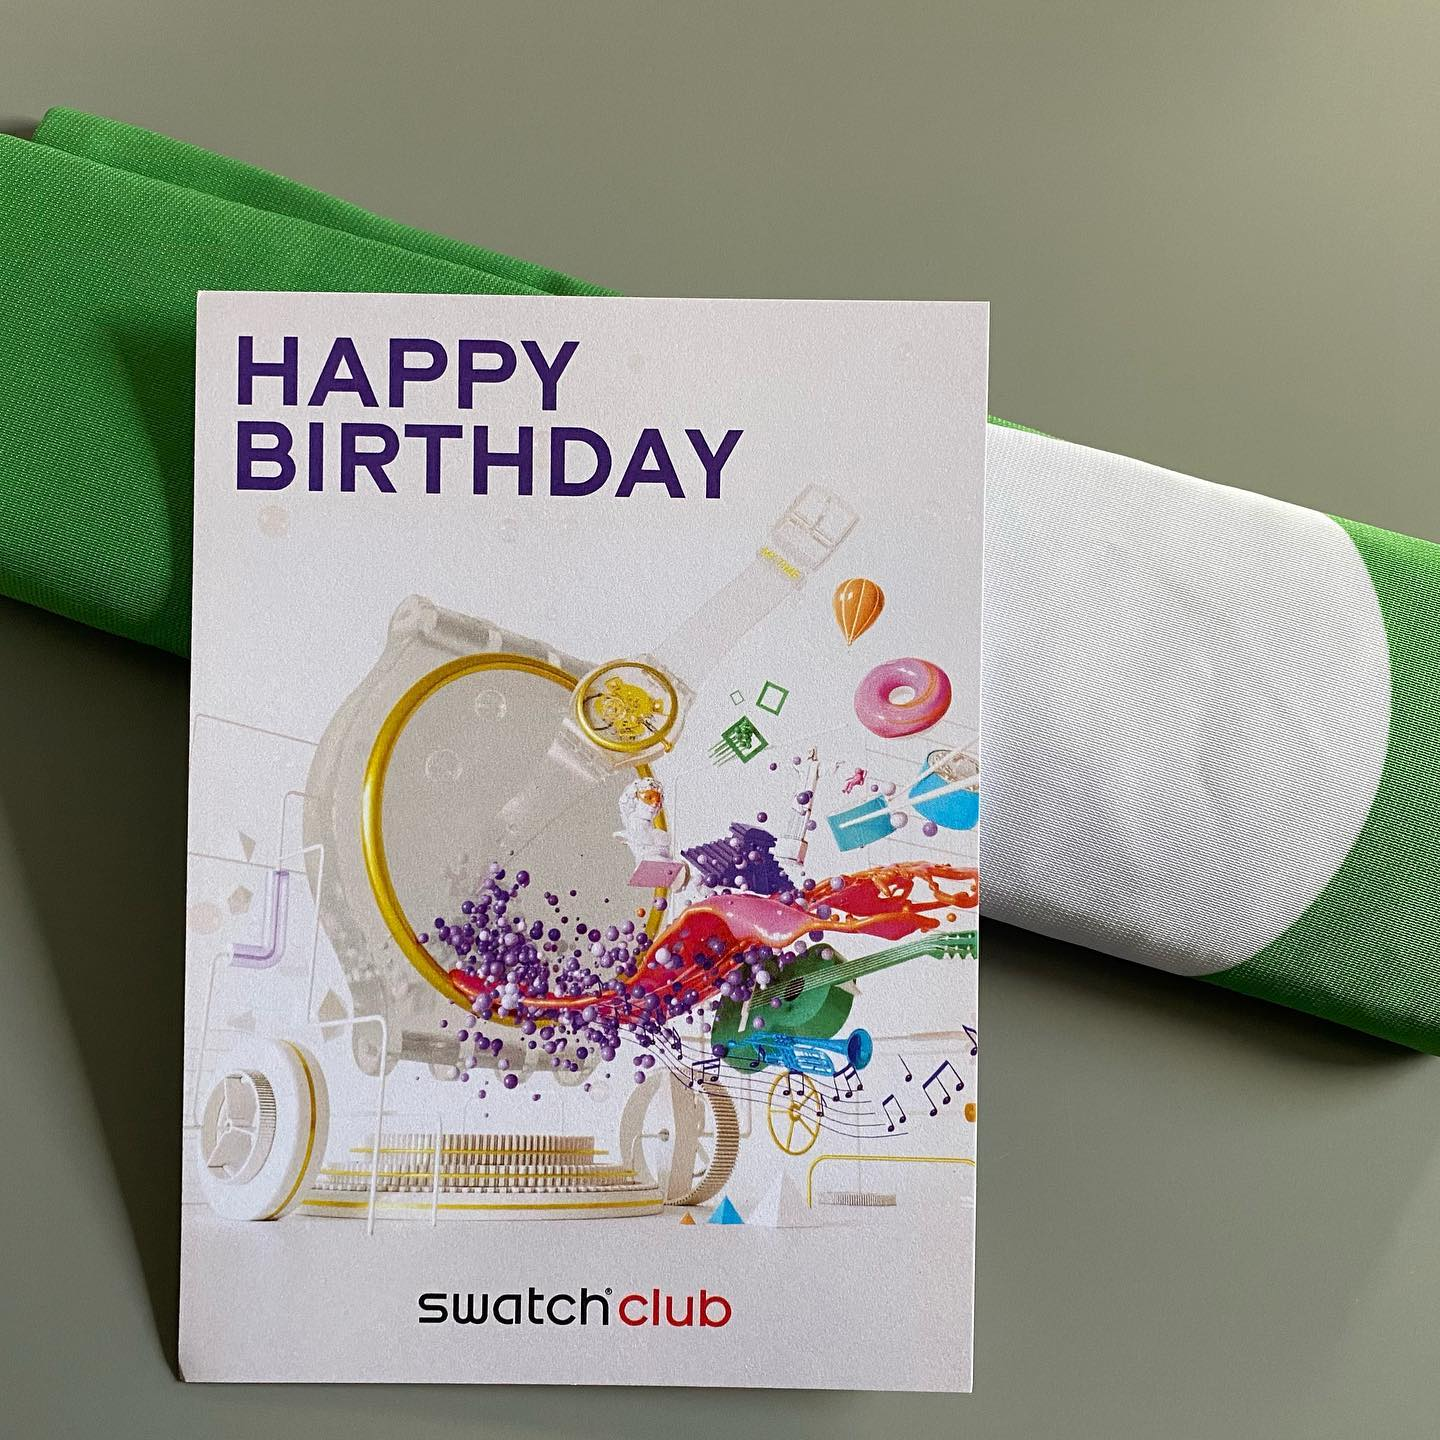 Bit later this time.  Thank you Swatch Club! @swatchclub